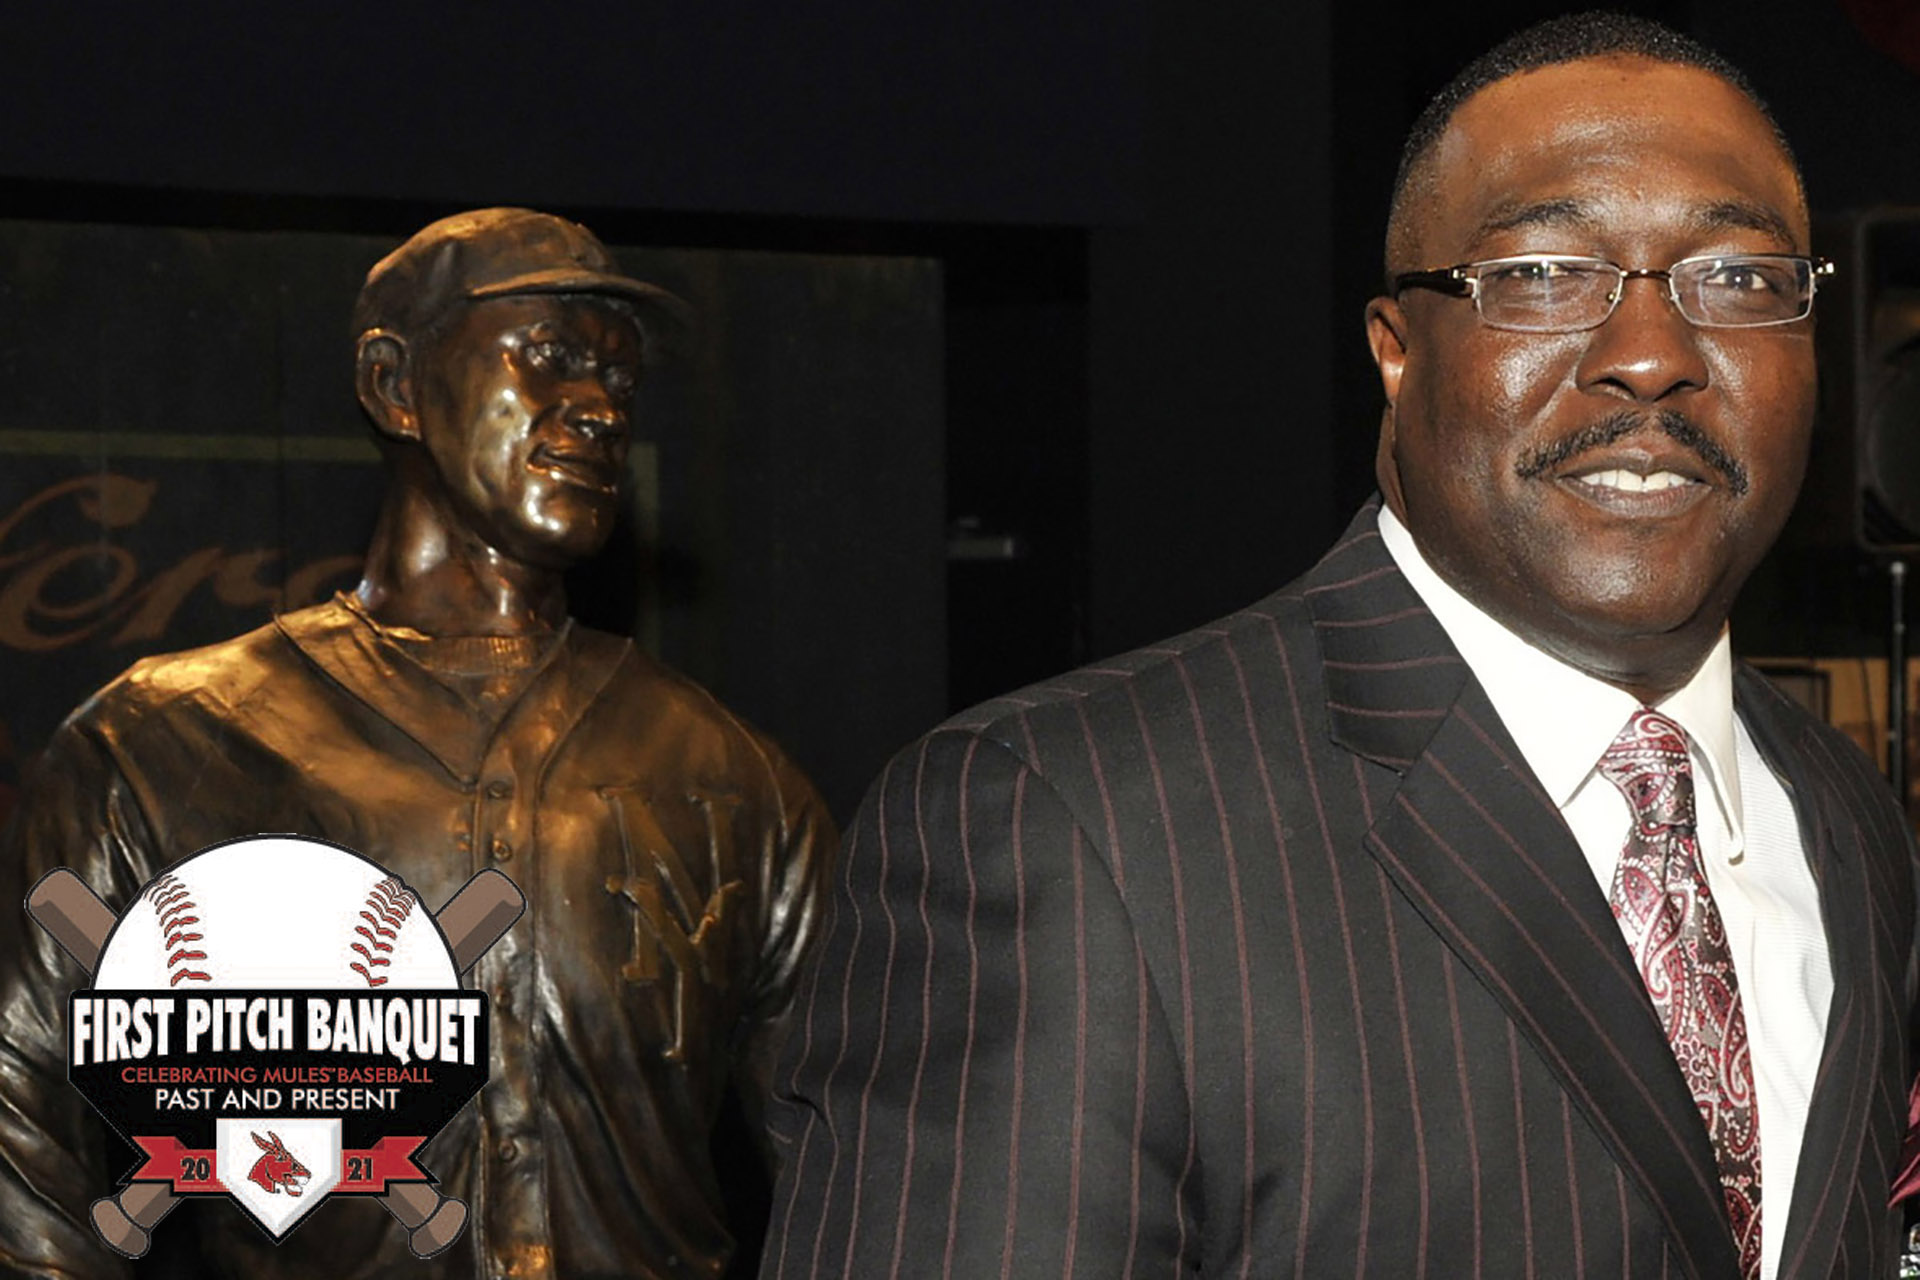 UCM Announces President of Negro Leagues Baseball Museum, Bob Kendrick, as Keynote Speaker of 2021 First Pitch Banquet - University of Central Missouri Athletics